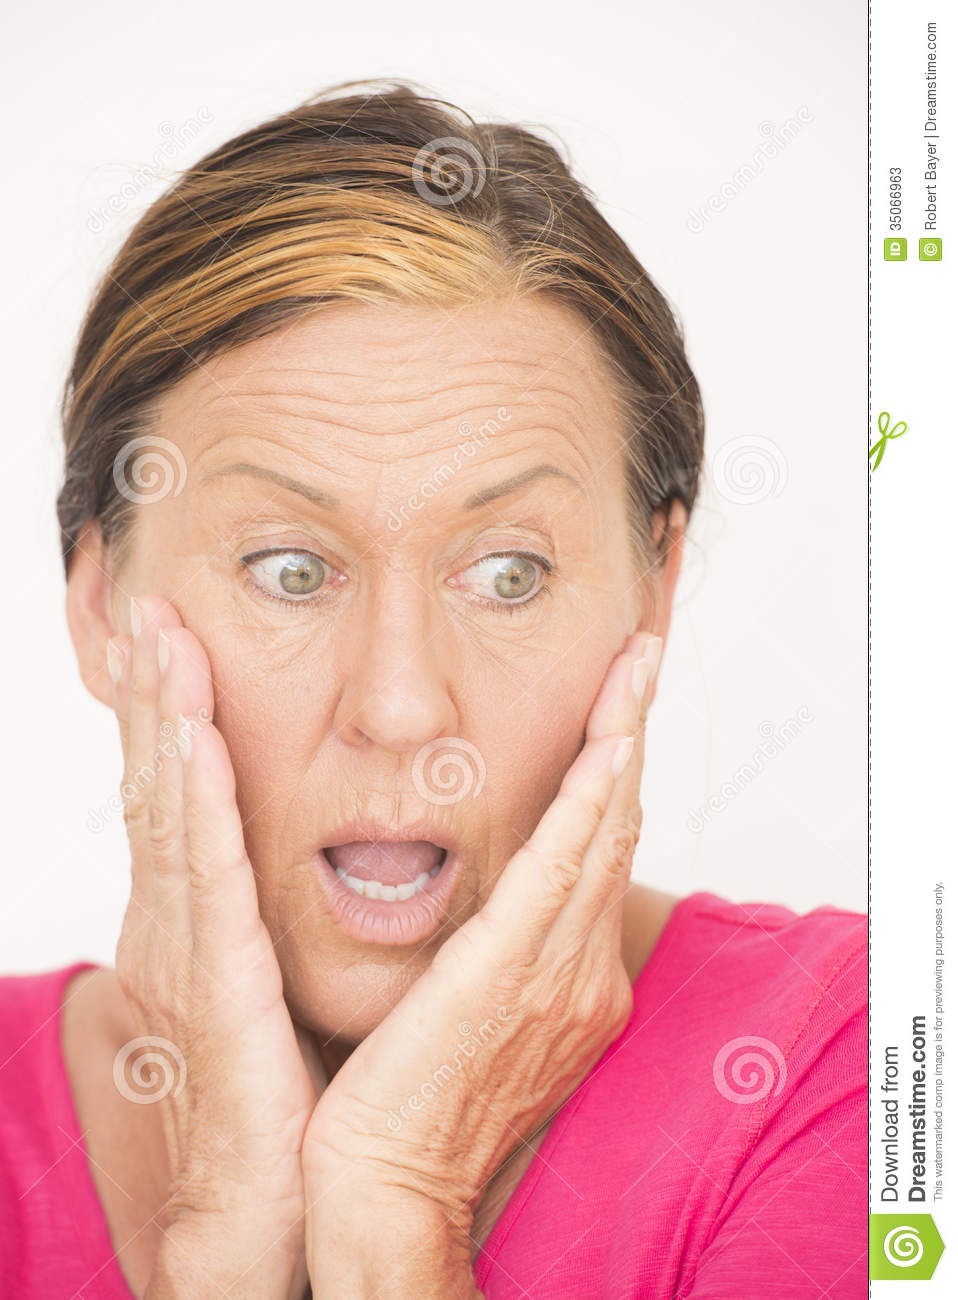 Shocked And Worried Woman Stock Photos - Image: 35066963